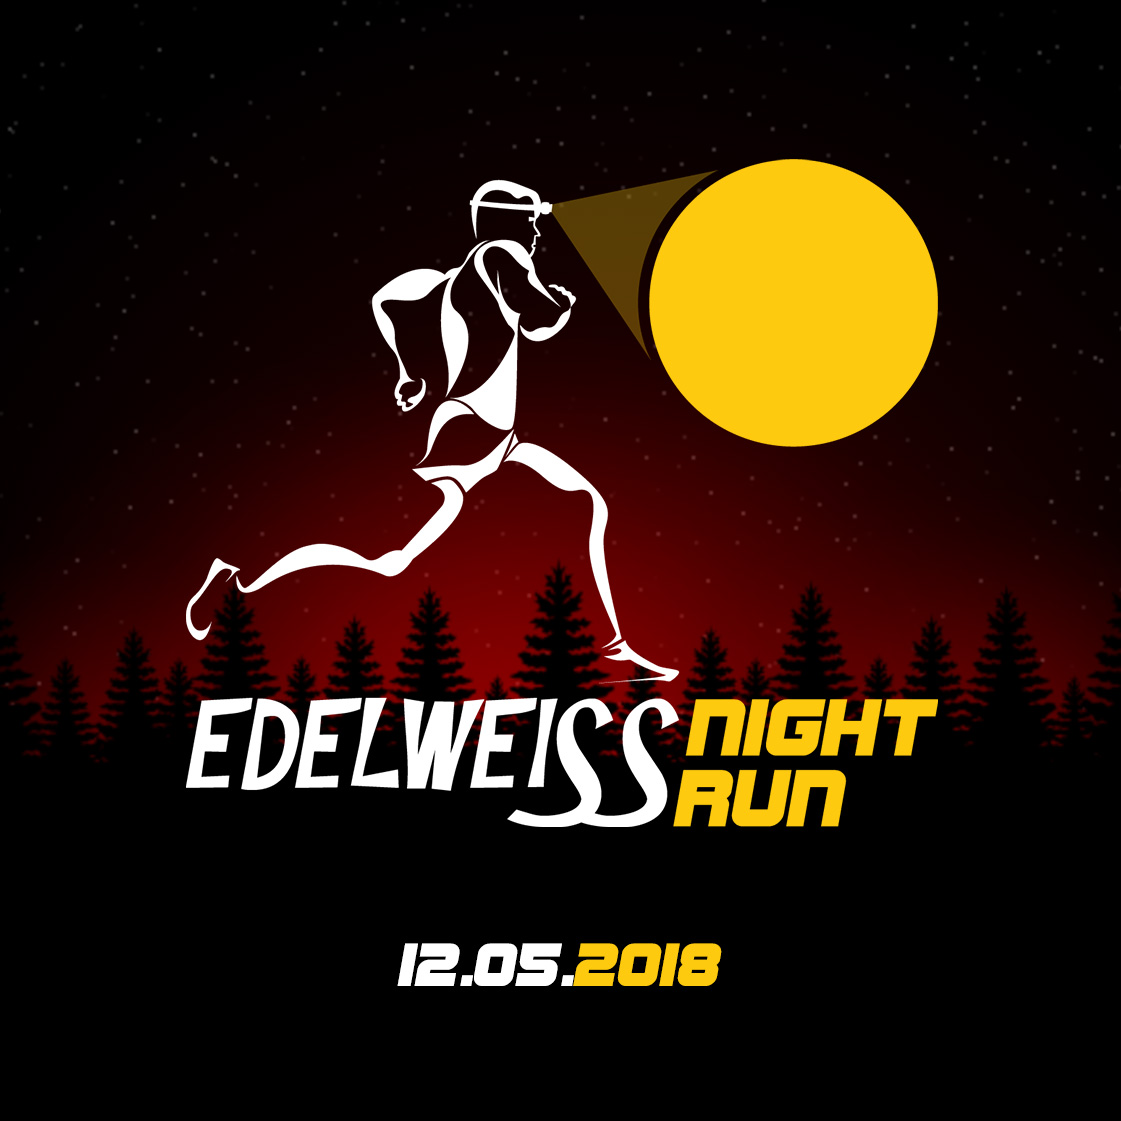 Edelweiss Night Run